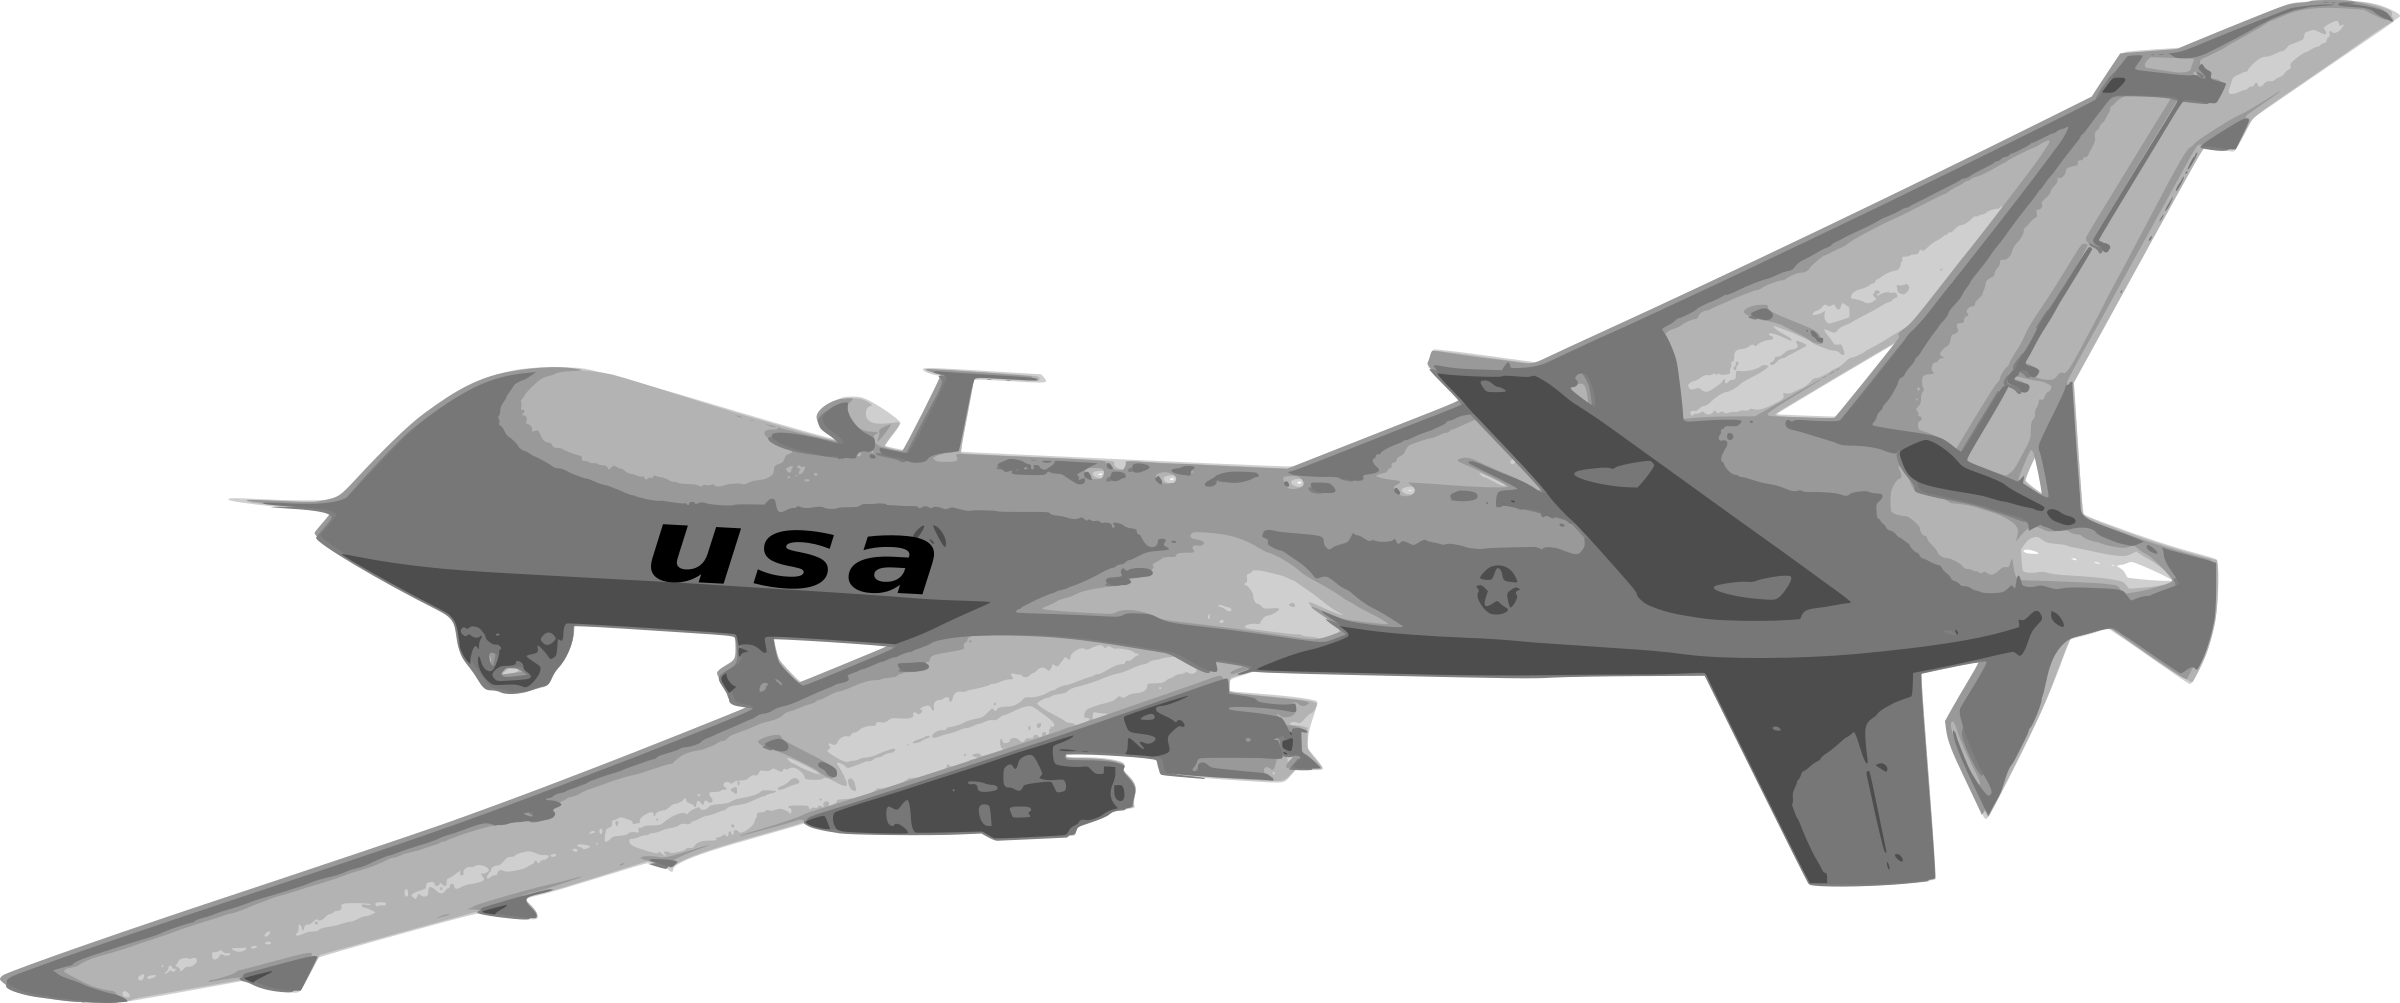 Jet clipart airforce. Predator drone big image